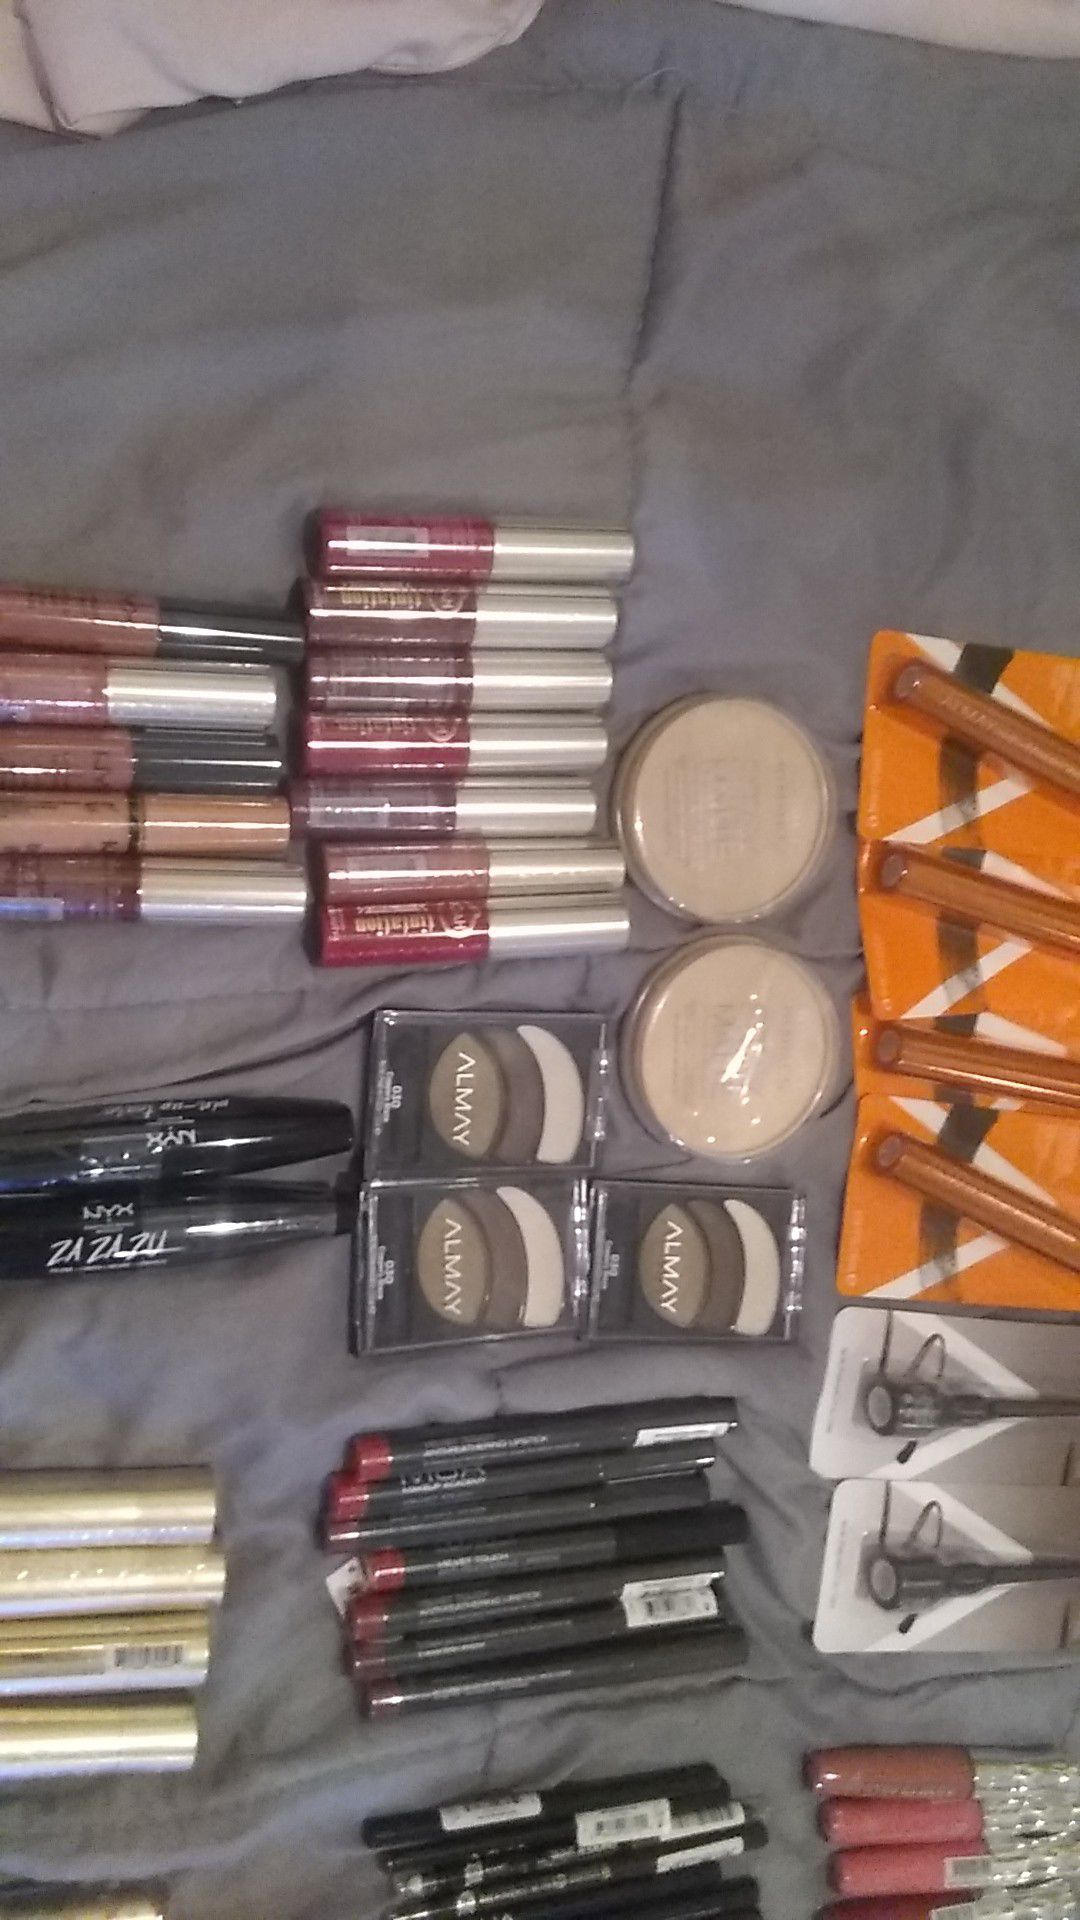 Makeup different brands $2 to $3 each